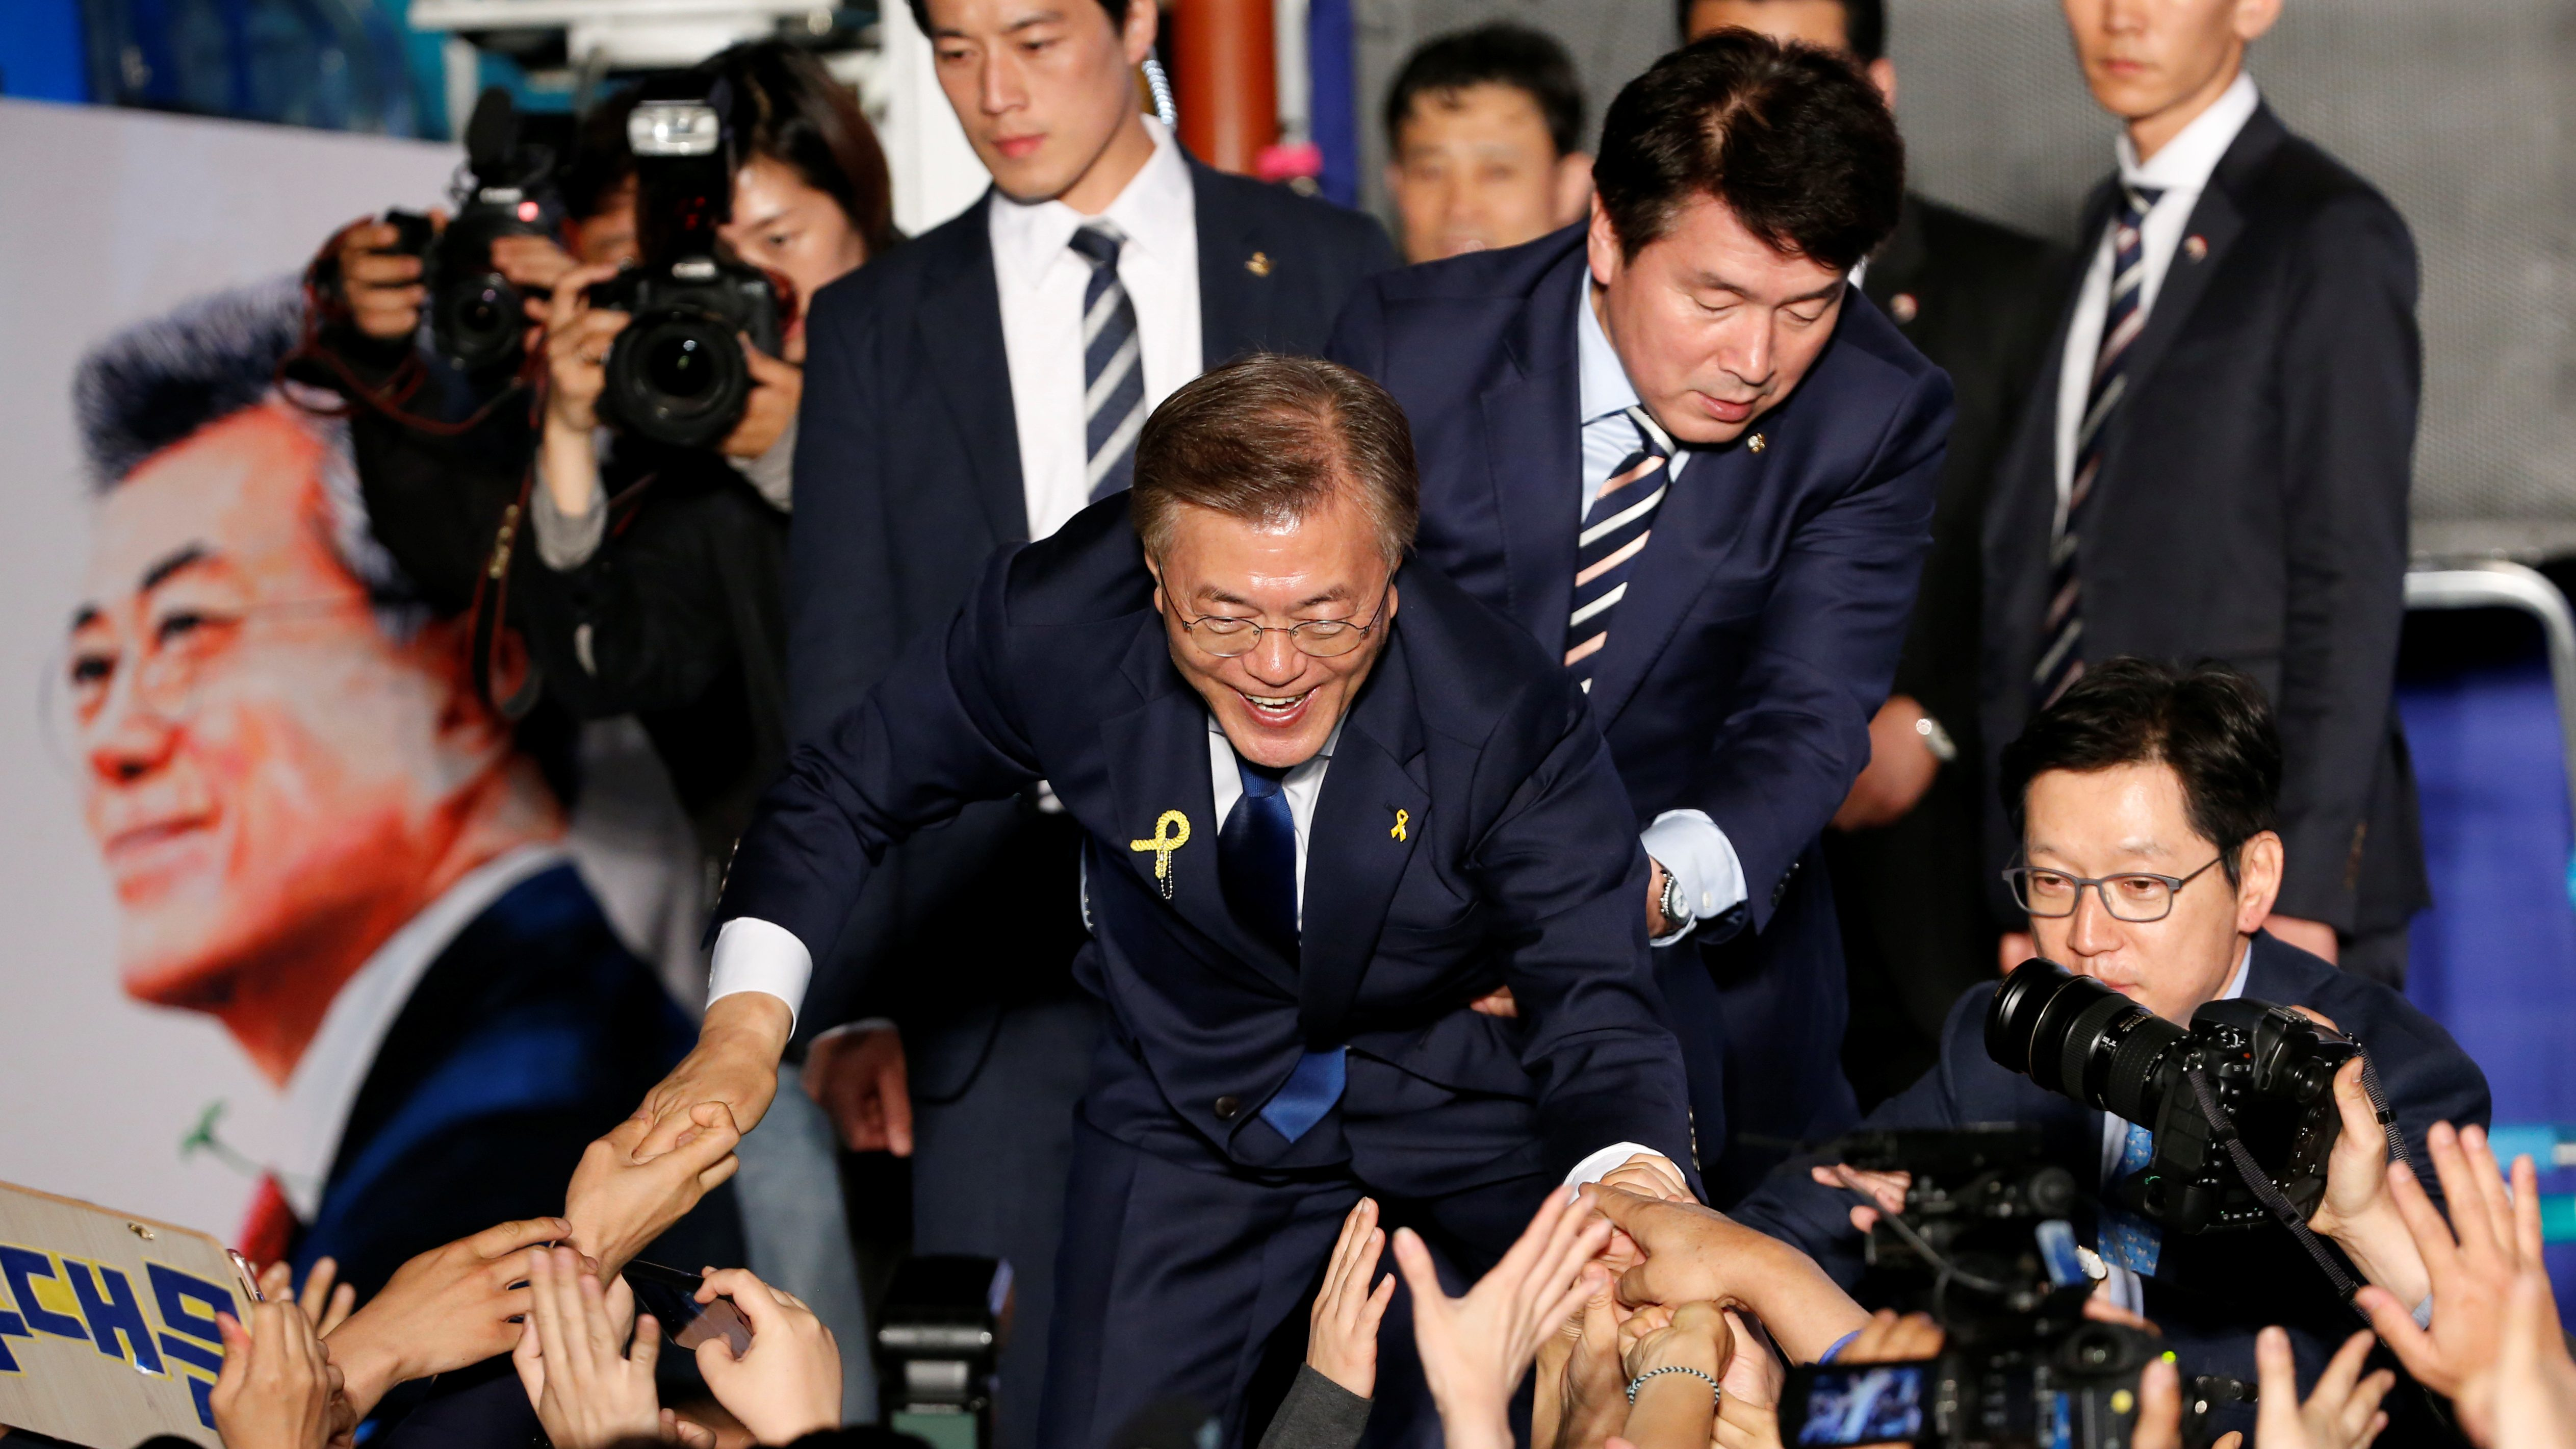 South Korea's president-elect Moon Jae-in thanks supporters at Gwanghwamun Square in Seoul, South Korea May 9, 2017. REUTERS/Kim Kyunghoon - RTS15UZL